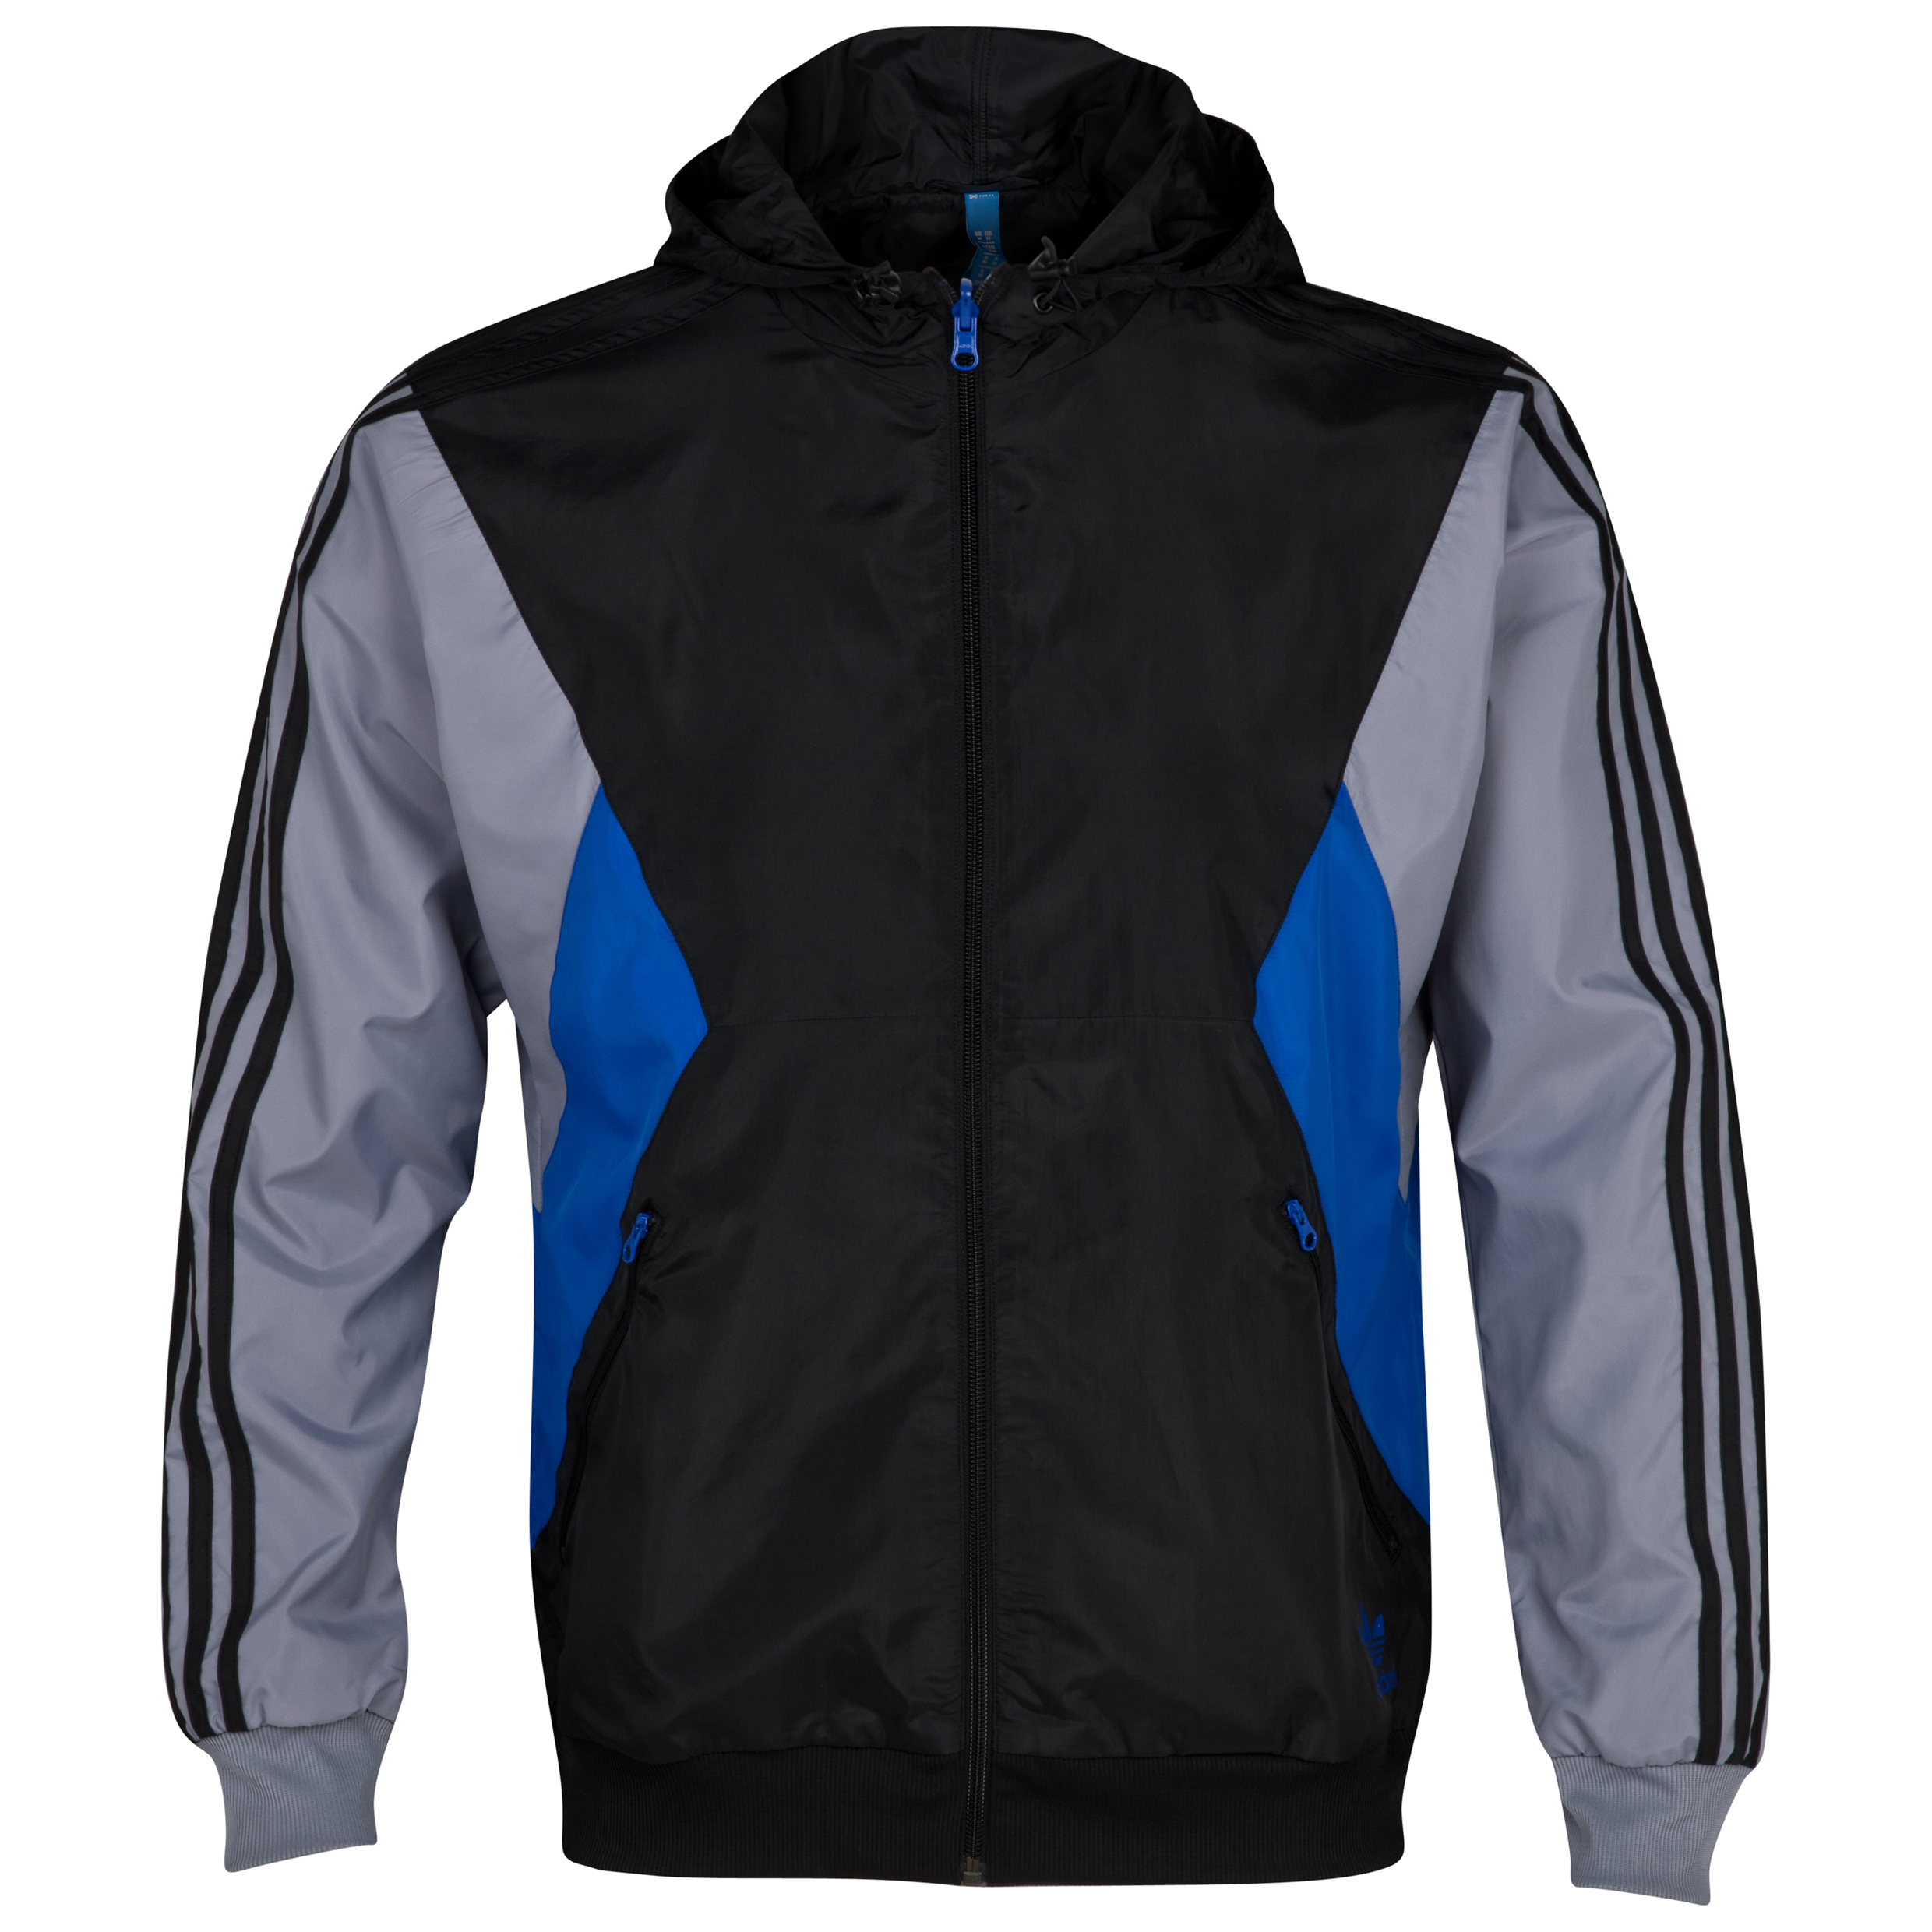 Oringinals Teorado Reversible Windbreaker - Black/Tech Grey/True Blue